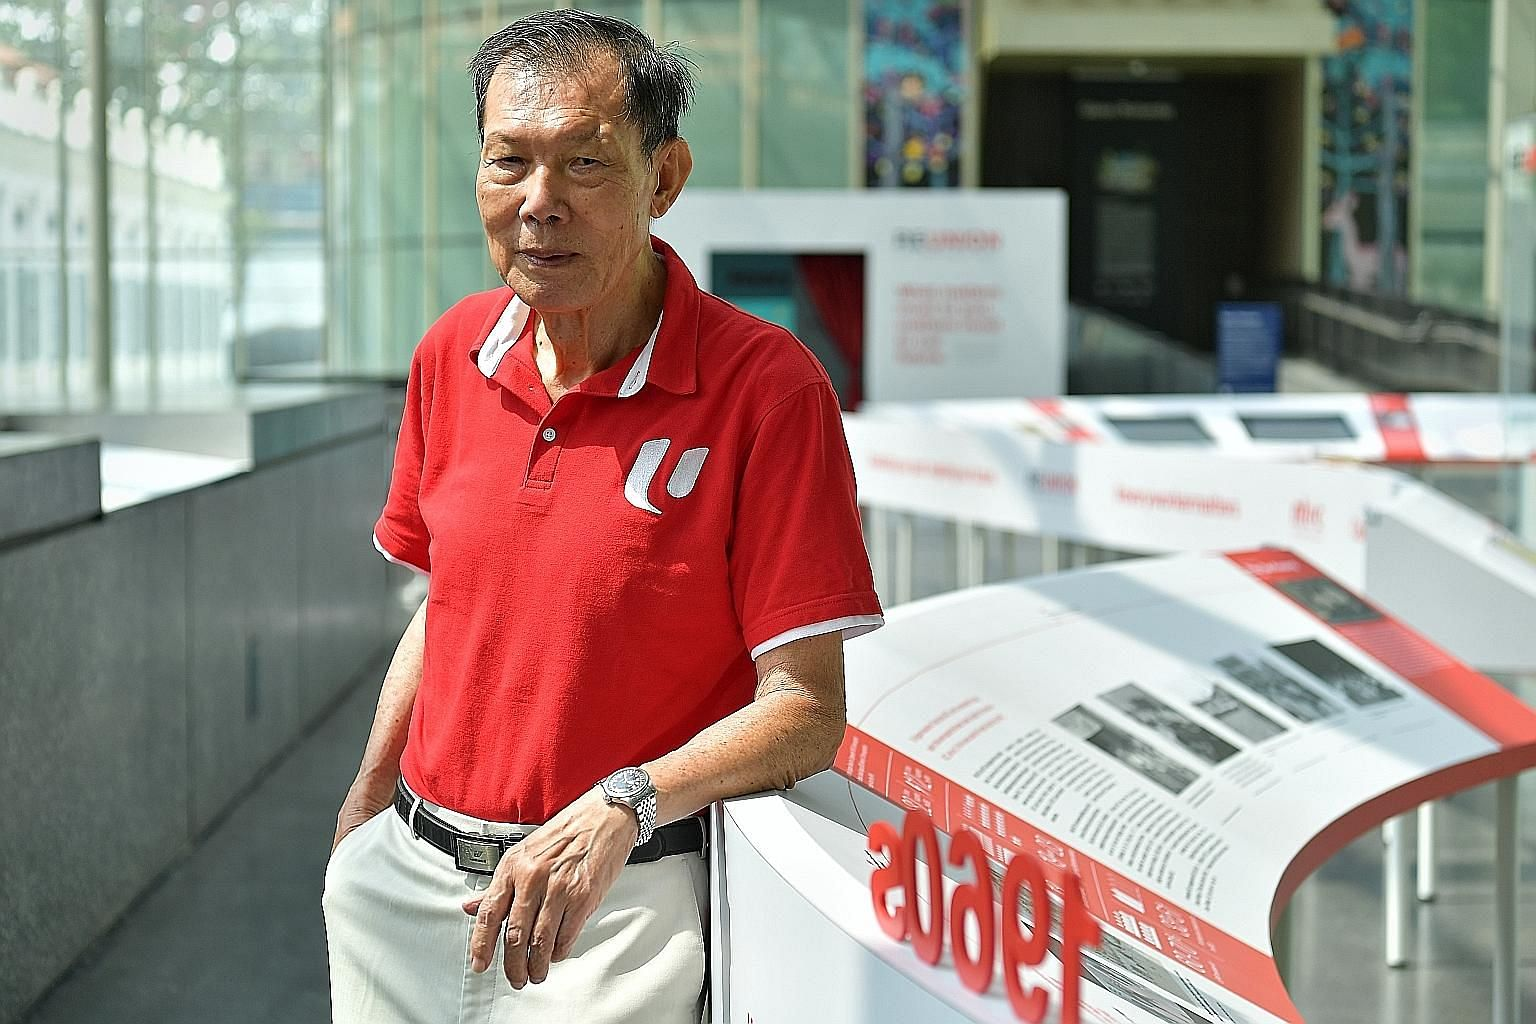 Retired union leader Tan Soon Yam believes unions are just as important today in protecting workers' rights and improving their lives as they were in the 1960s, when the labour situation was chaotic.